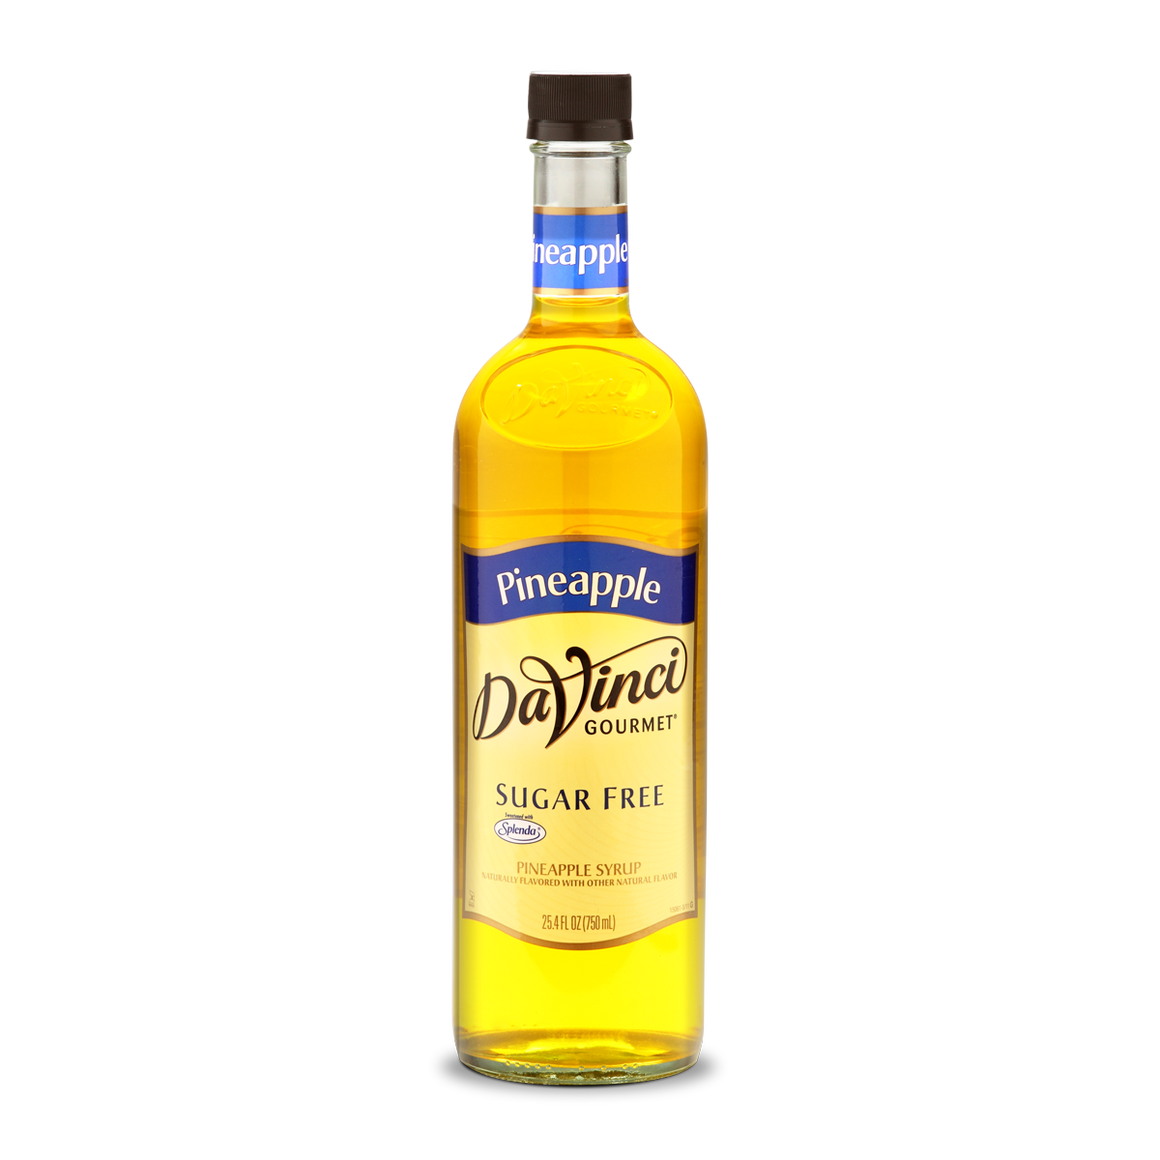 DaVinci - Sugar Free Syrup - Pineapple - 25.4 fl oz Bottle